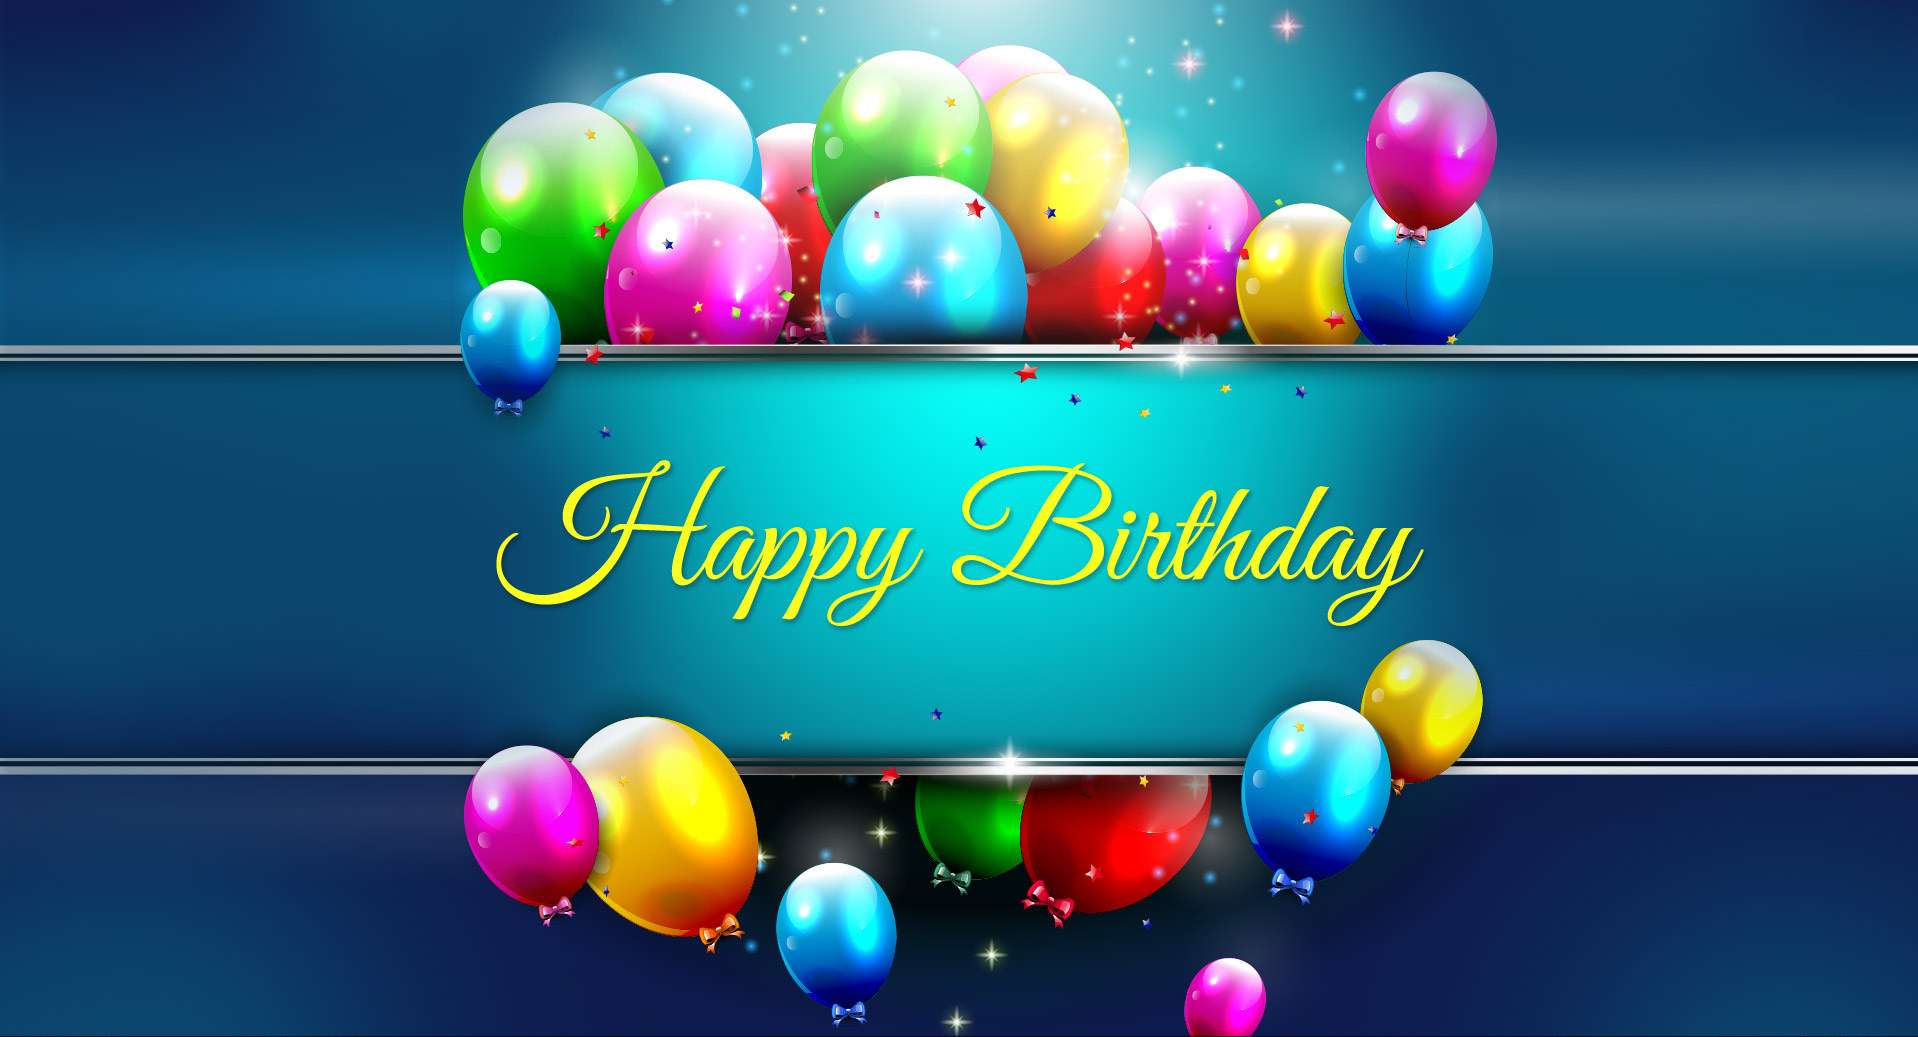 birthday background hd wallpapers ; 38045798-happy-birthday-hd-images